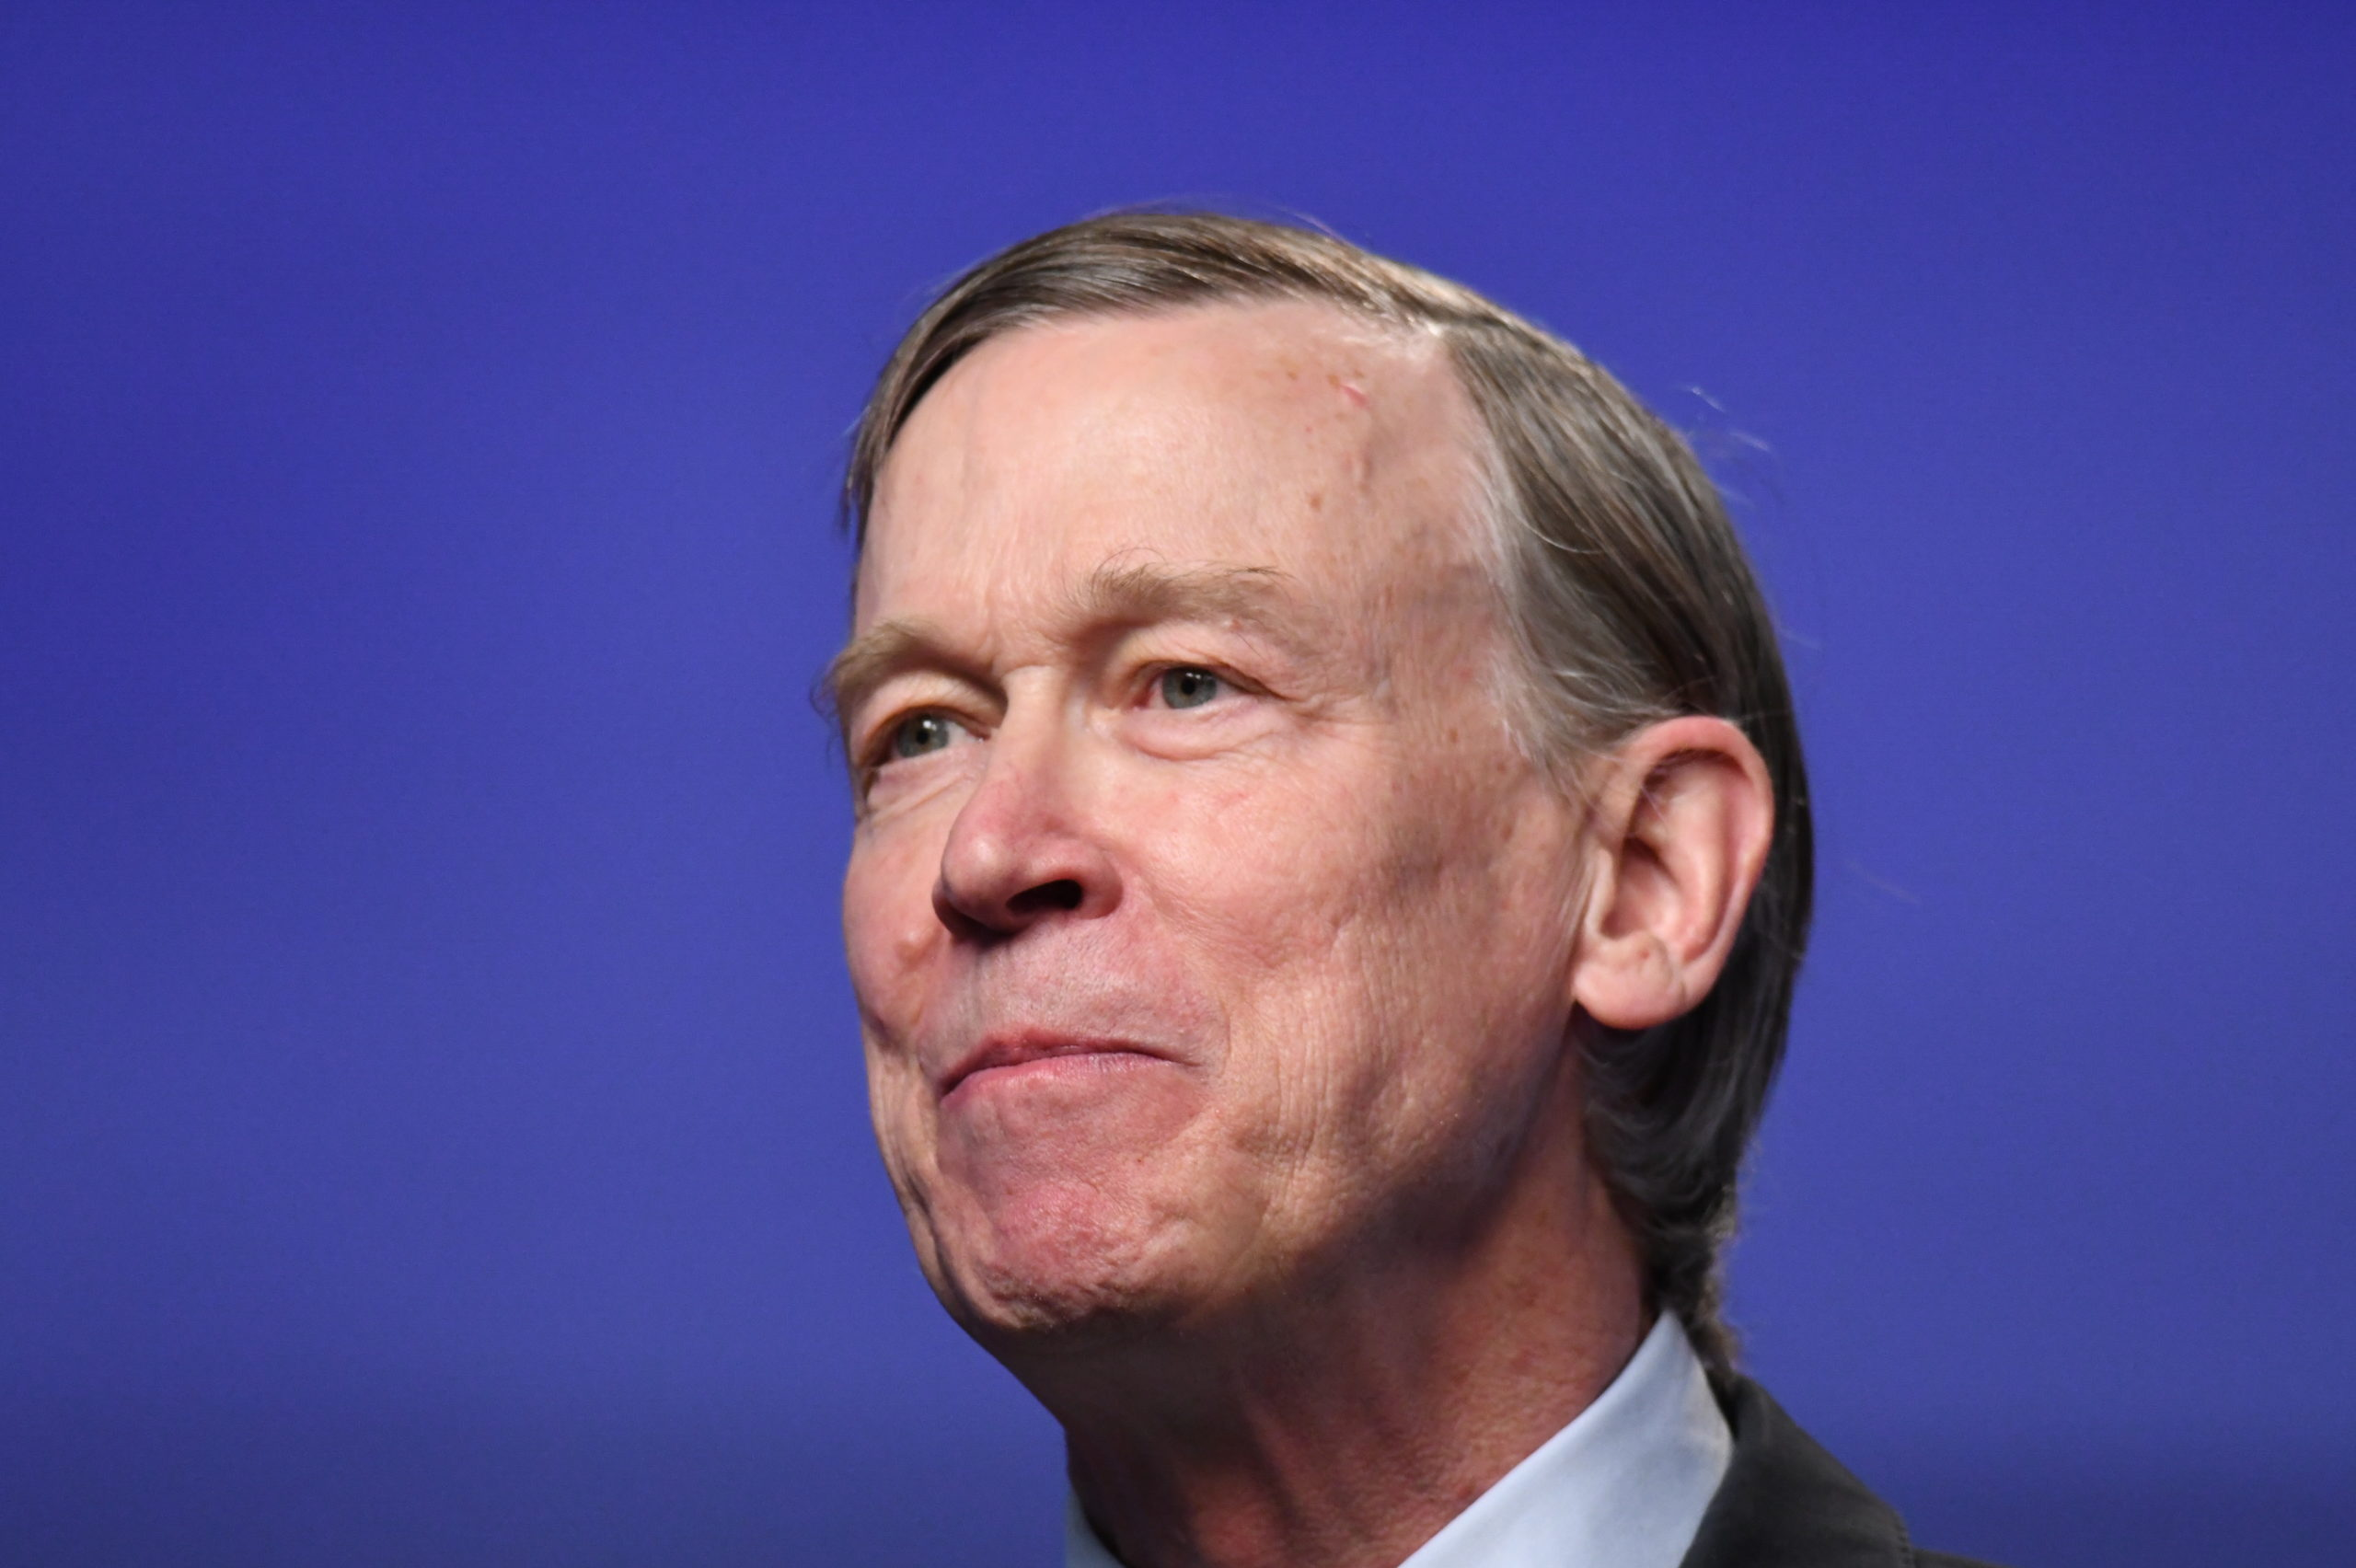 Former Colorado Gov. John Hickenlooper debates former state House speaker Andrew Romanoff in the studio of Denver7 in Denver on Tuesday, June 16, 2020. The debate, held ahead of the Democratic primary, was sponsored by The Denver Post, Colorado Public Radio News, Denver7 and the University of DenverÕs Center on American Politics. The winner of the June 30 primary will go on to face incumbent Republican Colorado Sen. Cory Gardner in November's general election.